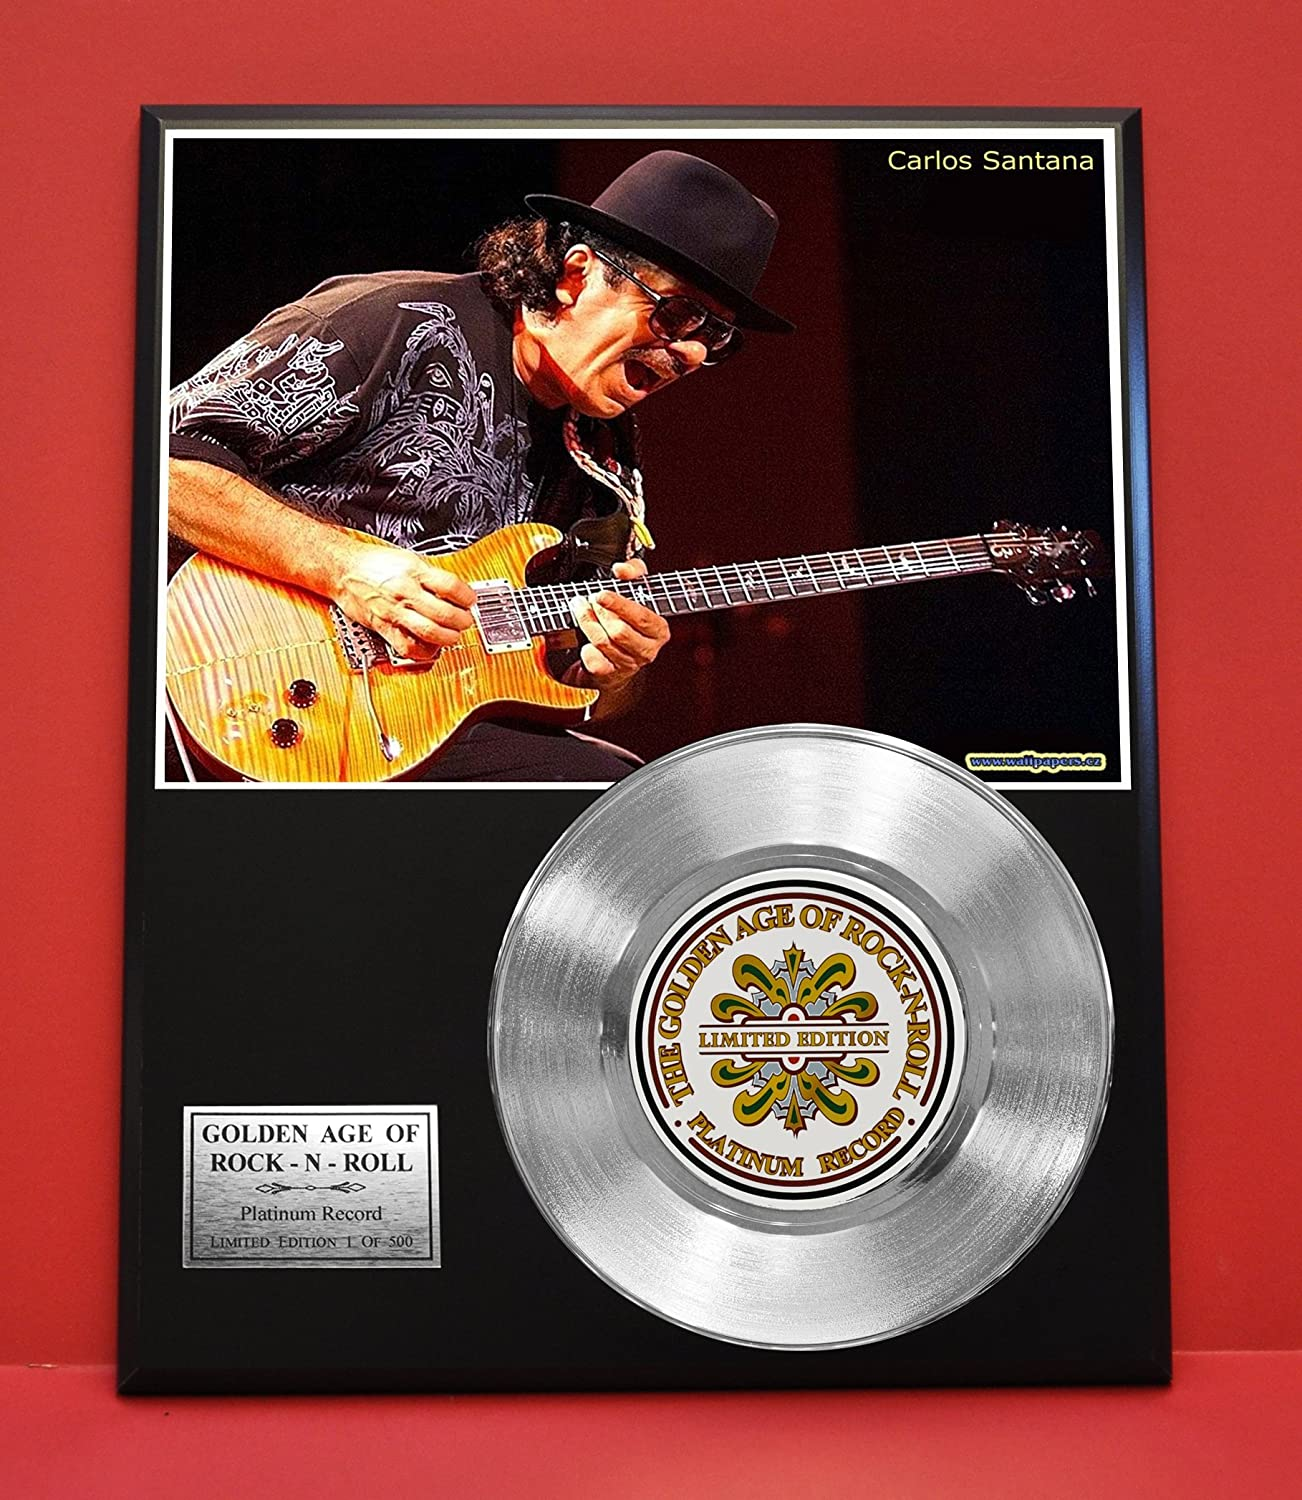 Santana Limited Edition Non Riaa Platinum Record Display - Award Quality Music Memorabilia Wall Art